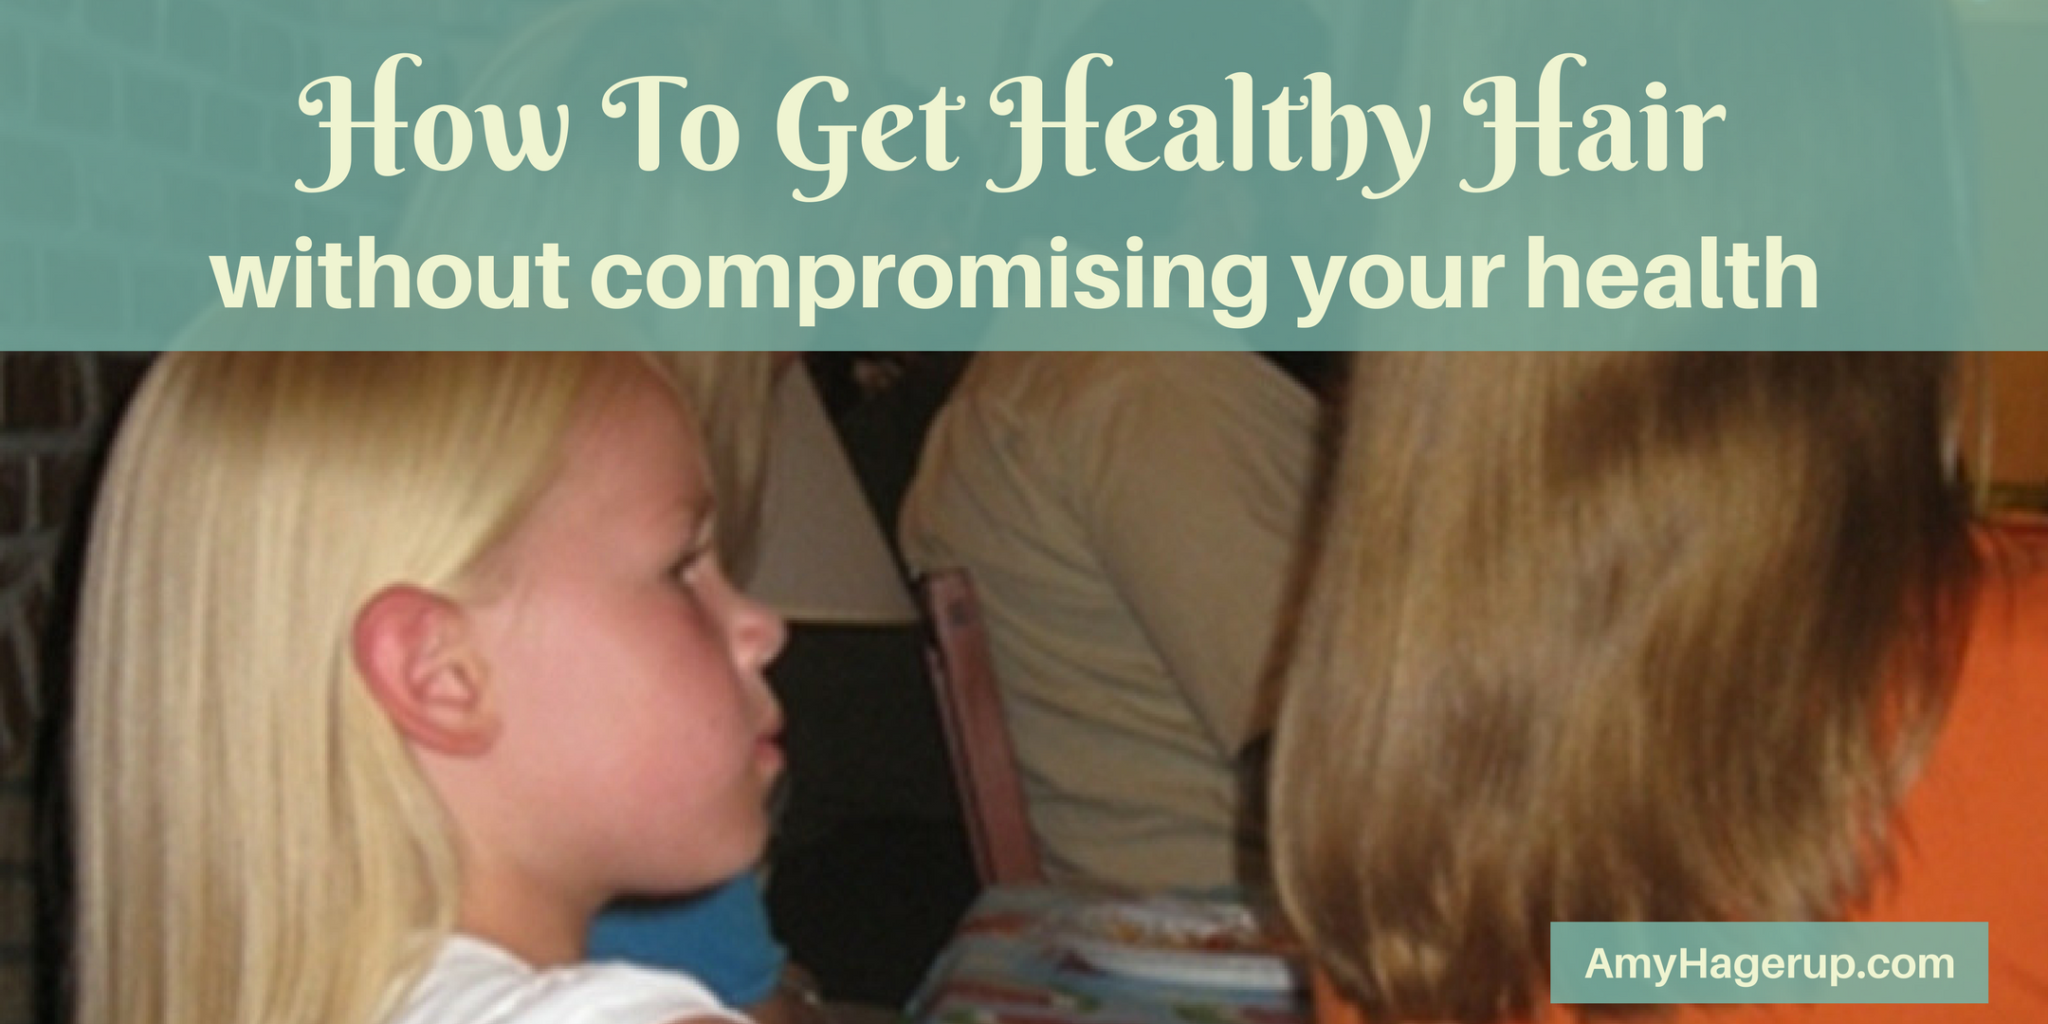 Check out how to get healthy hair without compromising your health.